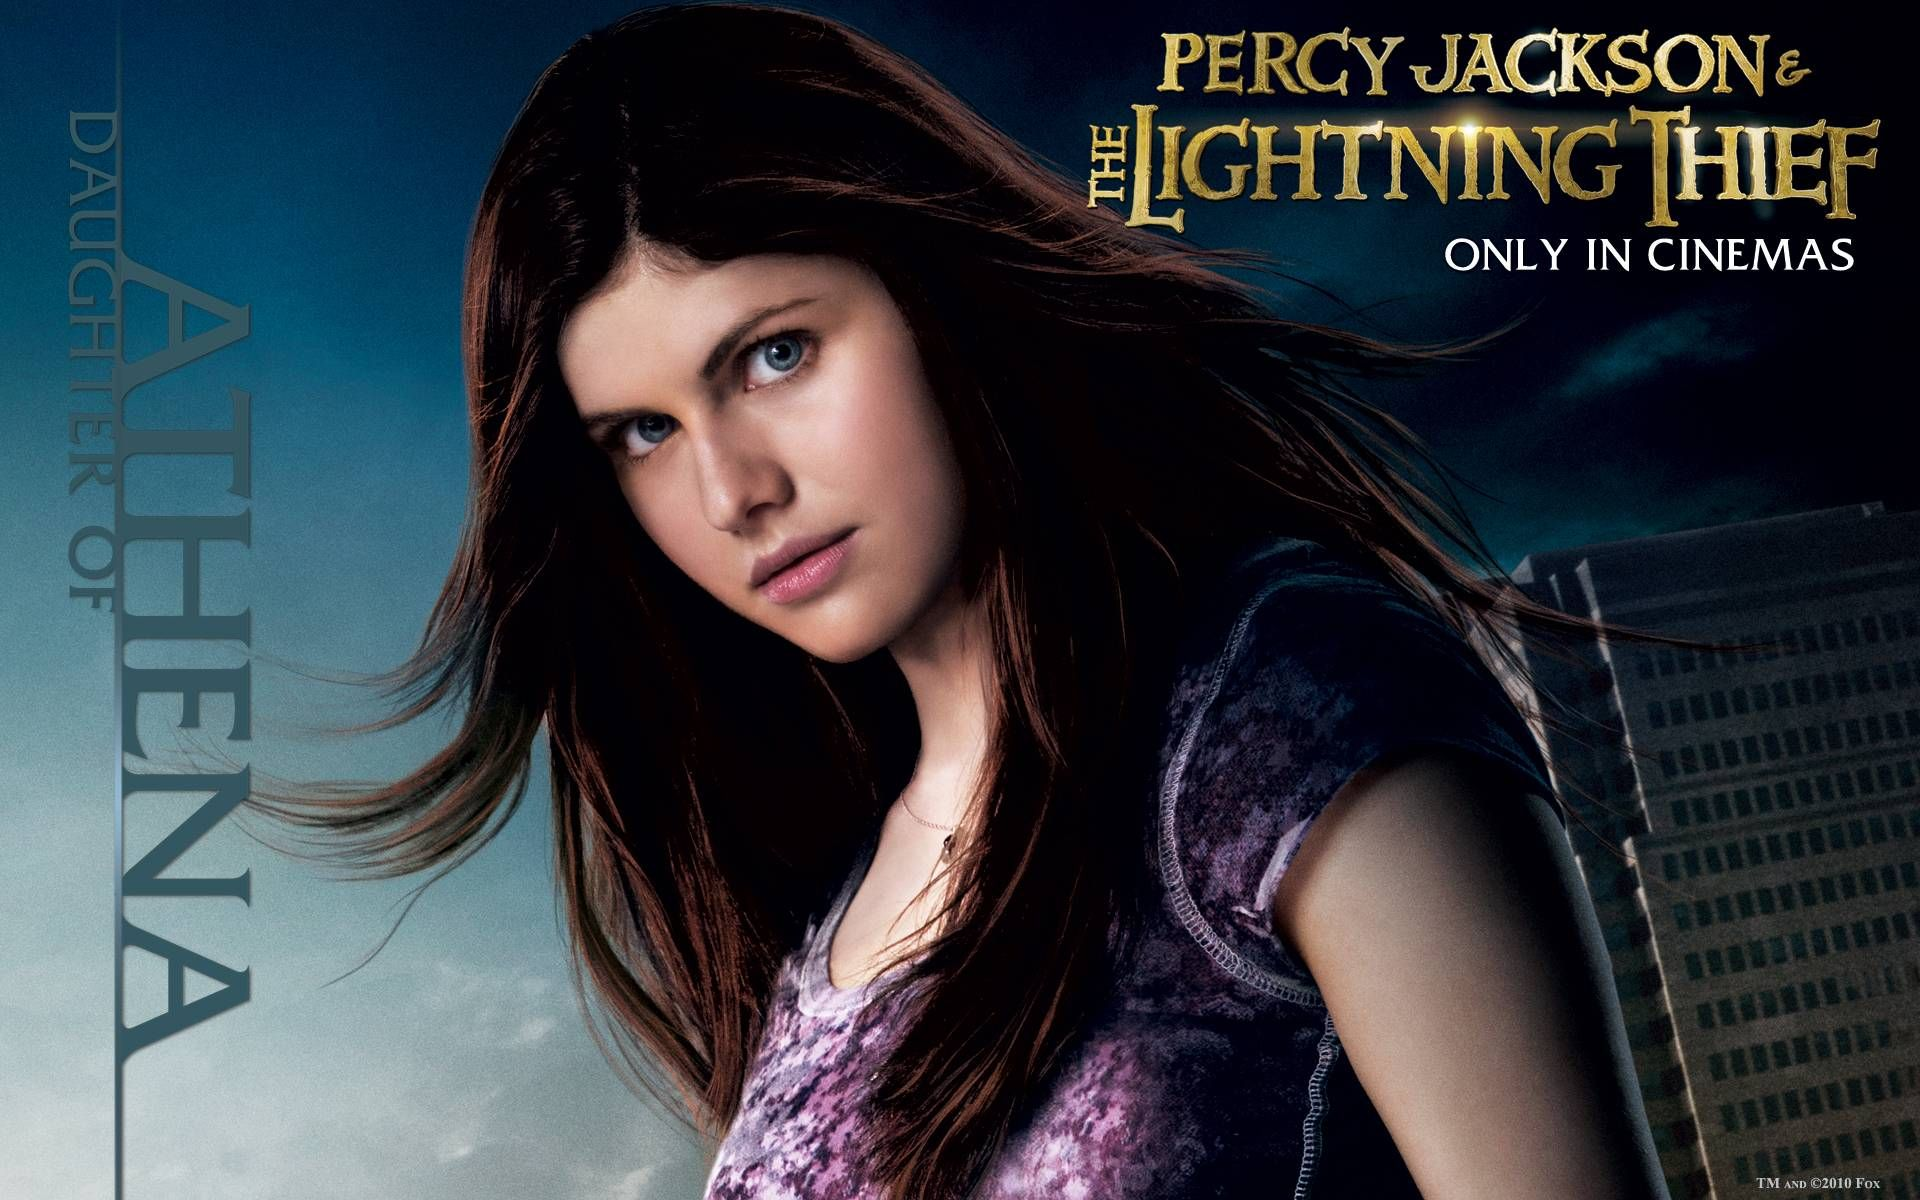 Percy jackson wallpaper by hanamephisto on deviantart 19201080 percy jackson wallpaper by hanamephisto on deviantart 19201080 percy jackson wallpaper adorable wallpapers voltagebd Image collections